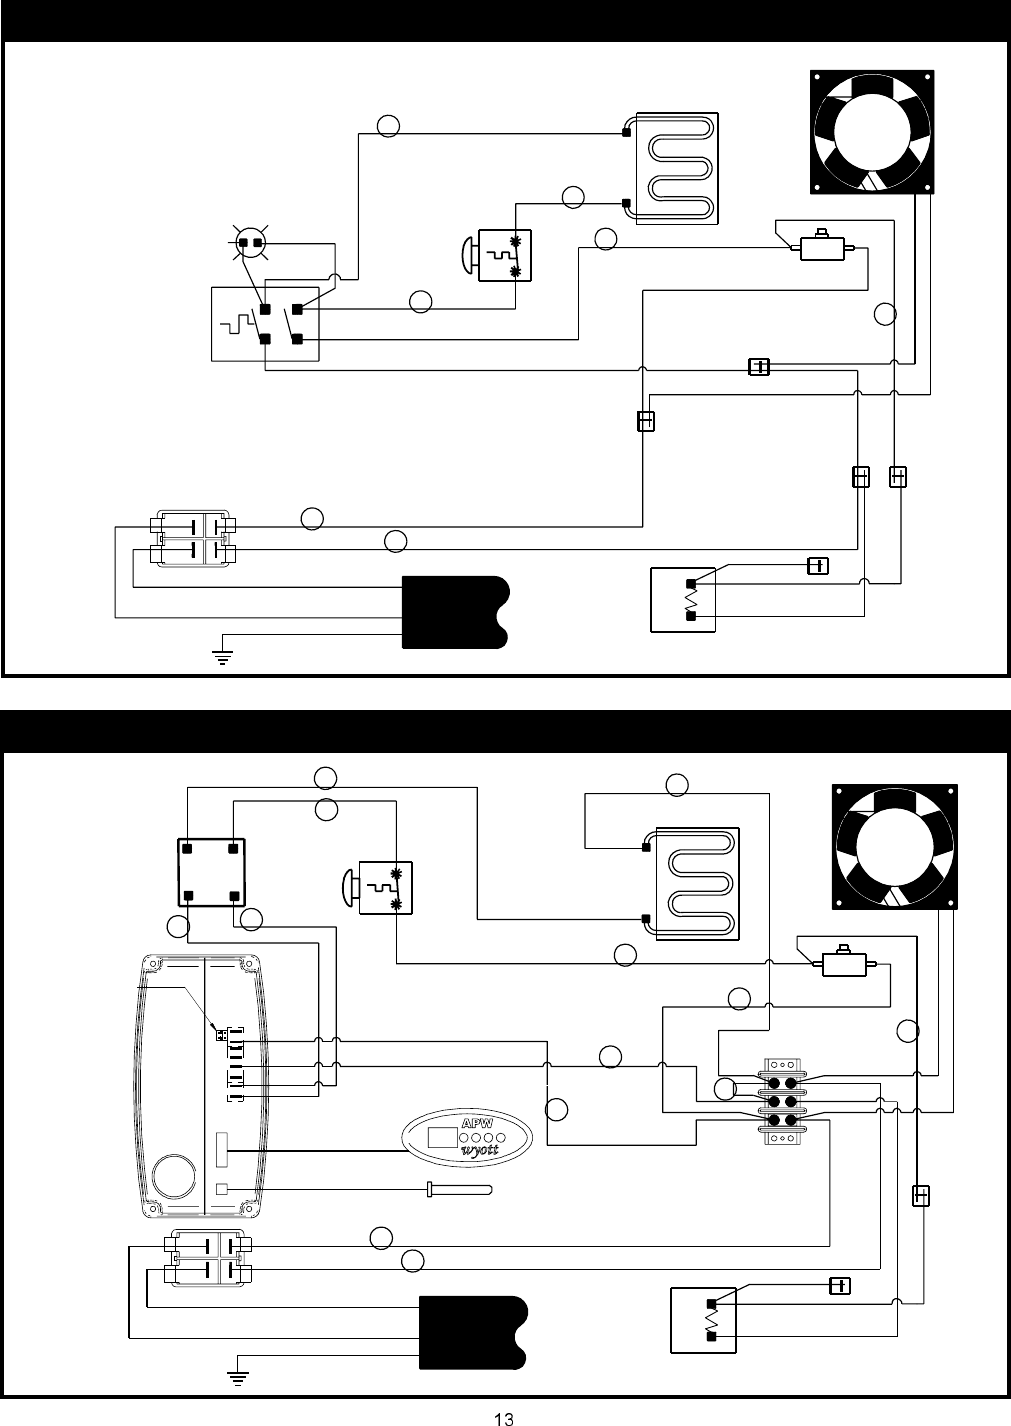 toaster wiring diagram toaster free engine image for user manual